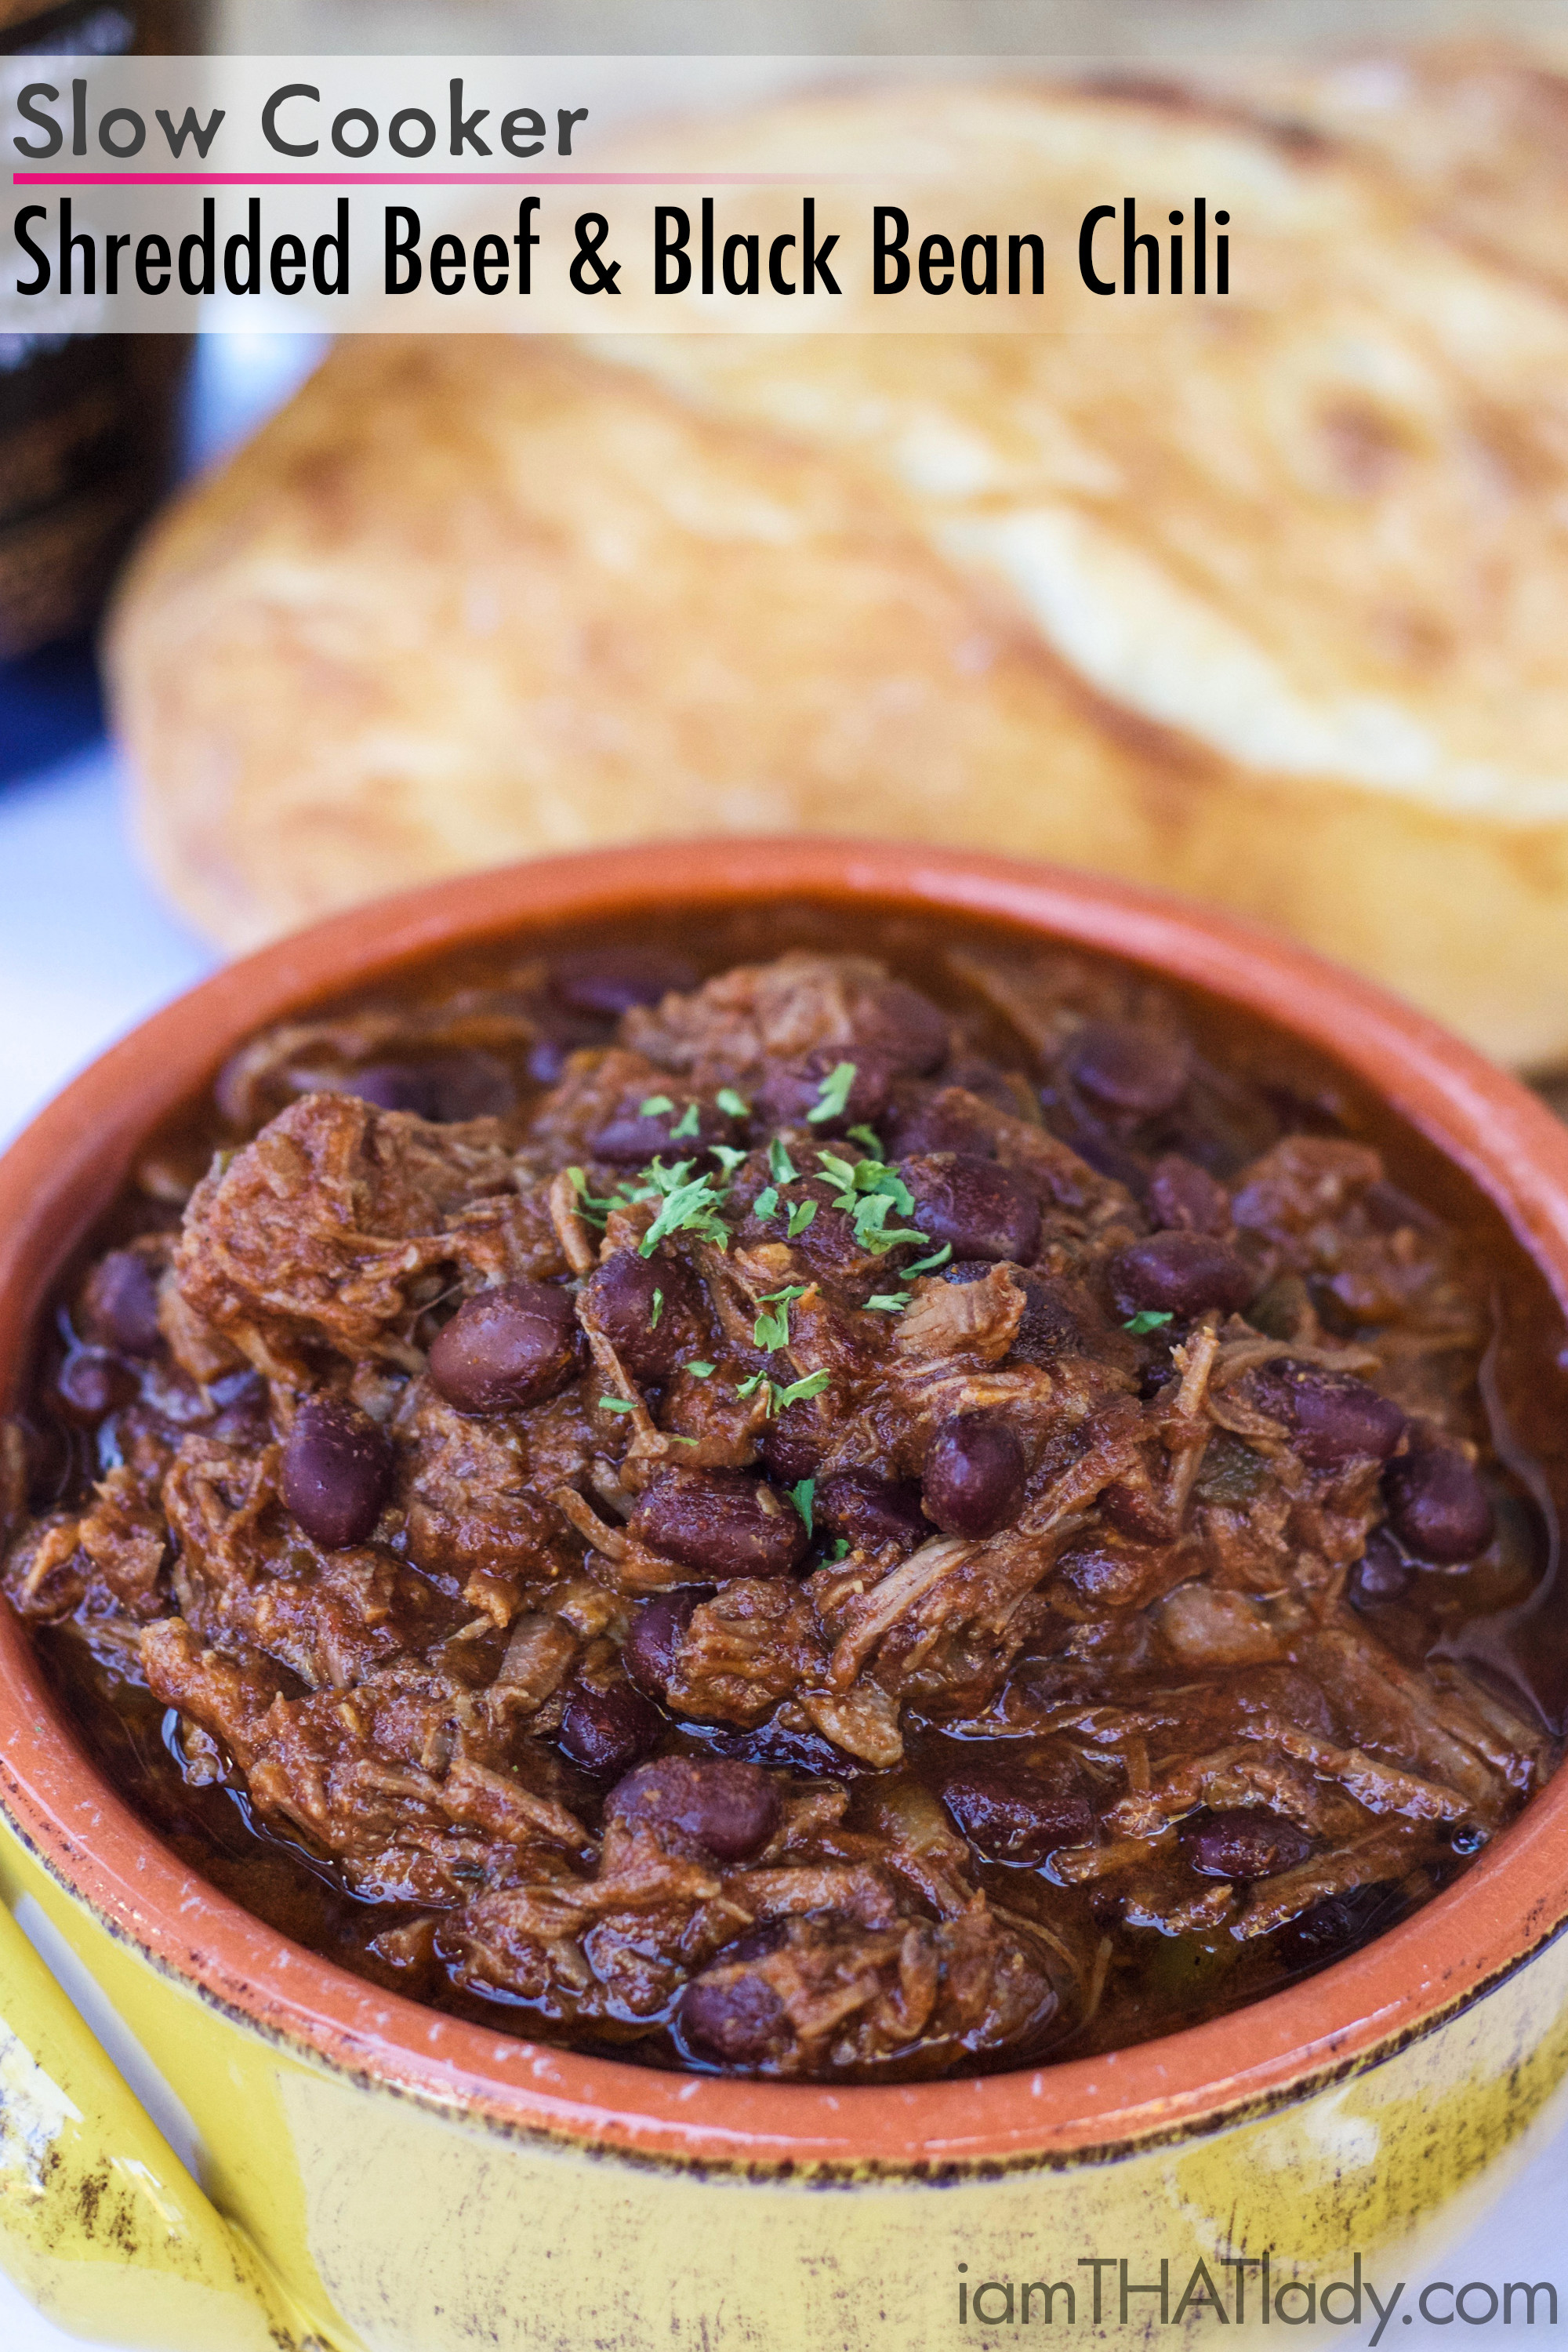 The Shredded Beef and Black Bean Chili recipe will win your chili cookoff competition thi year! It is AMAZING.